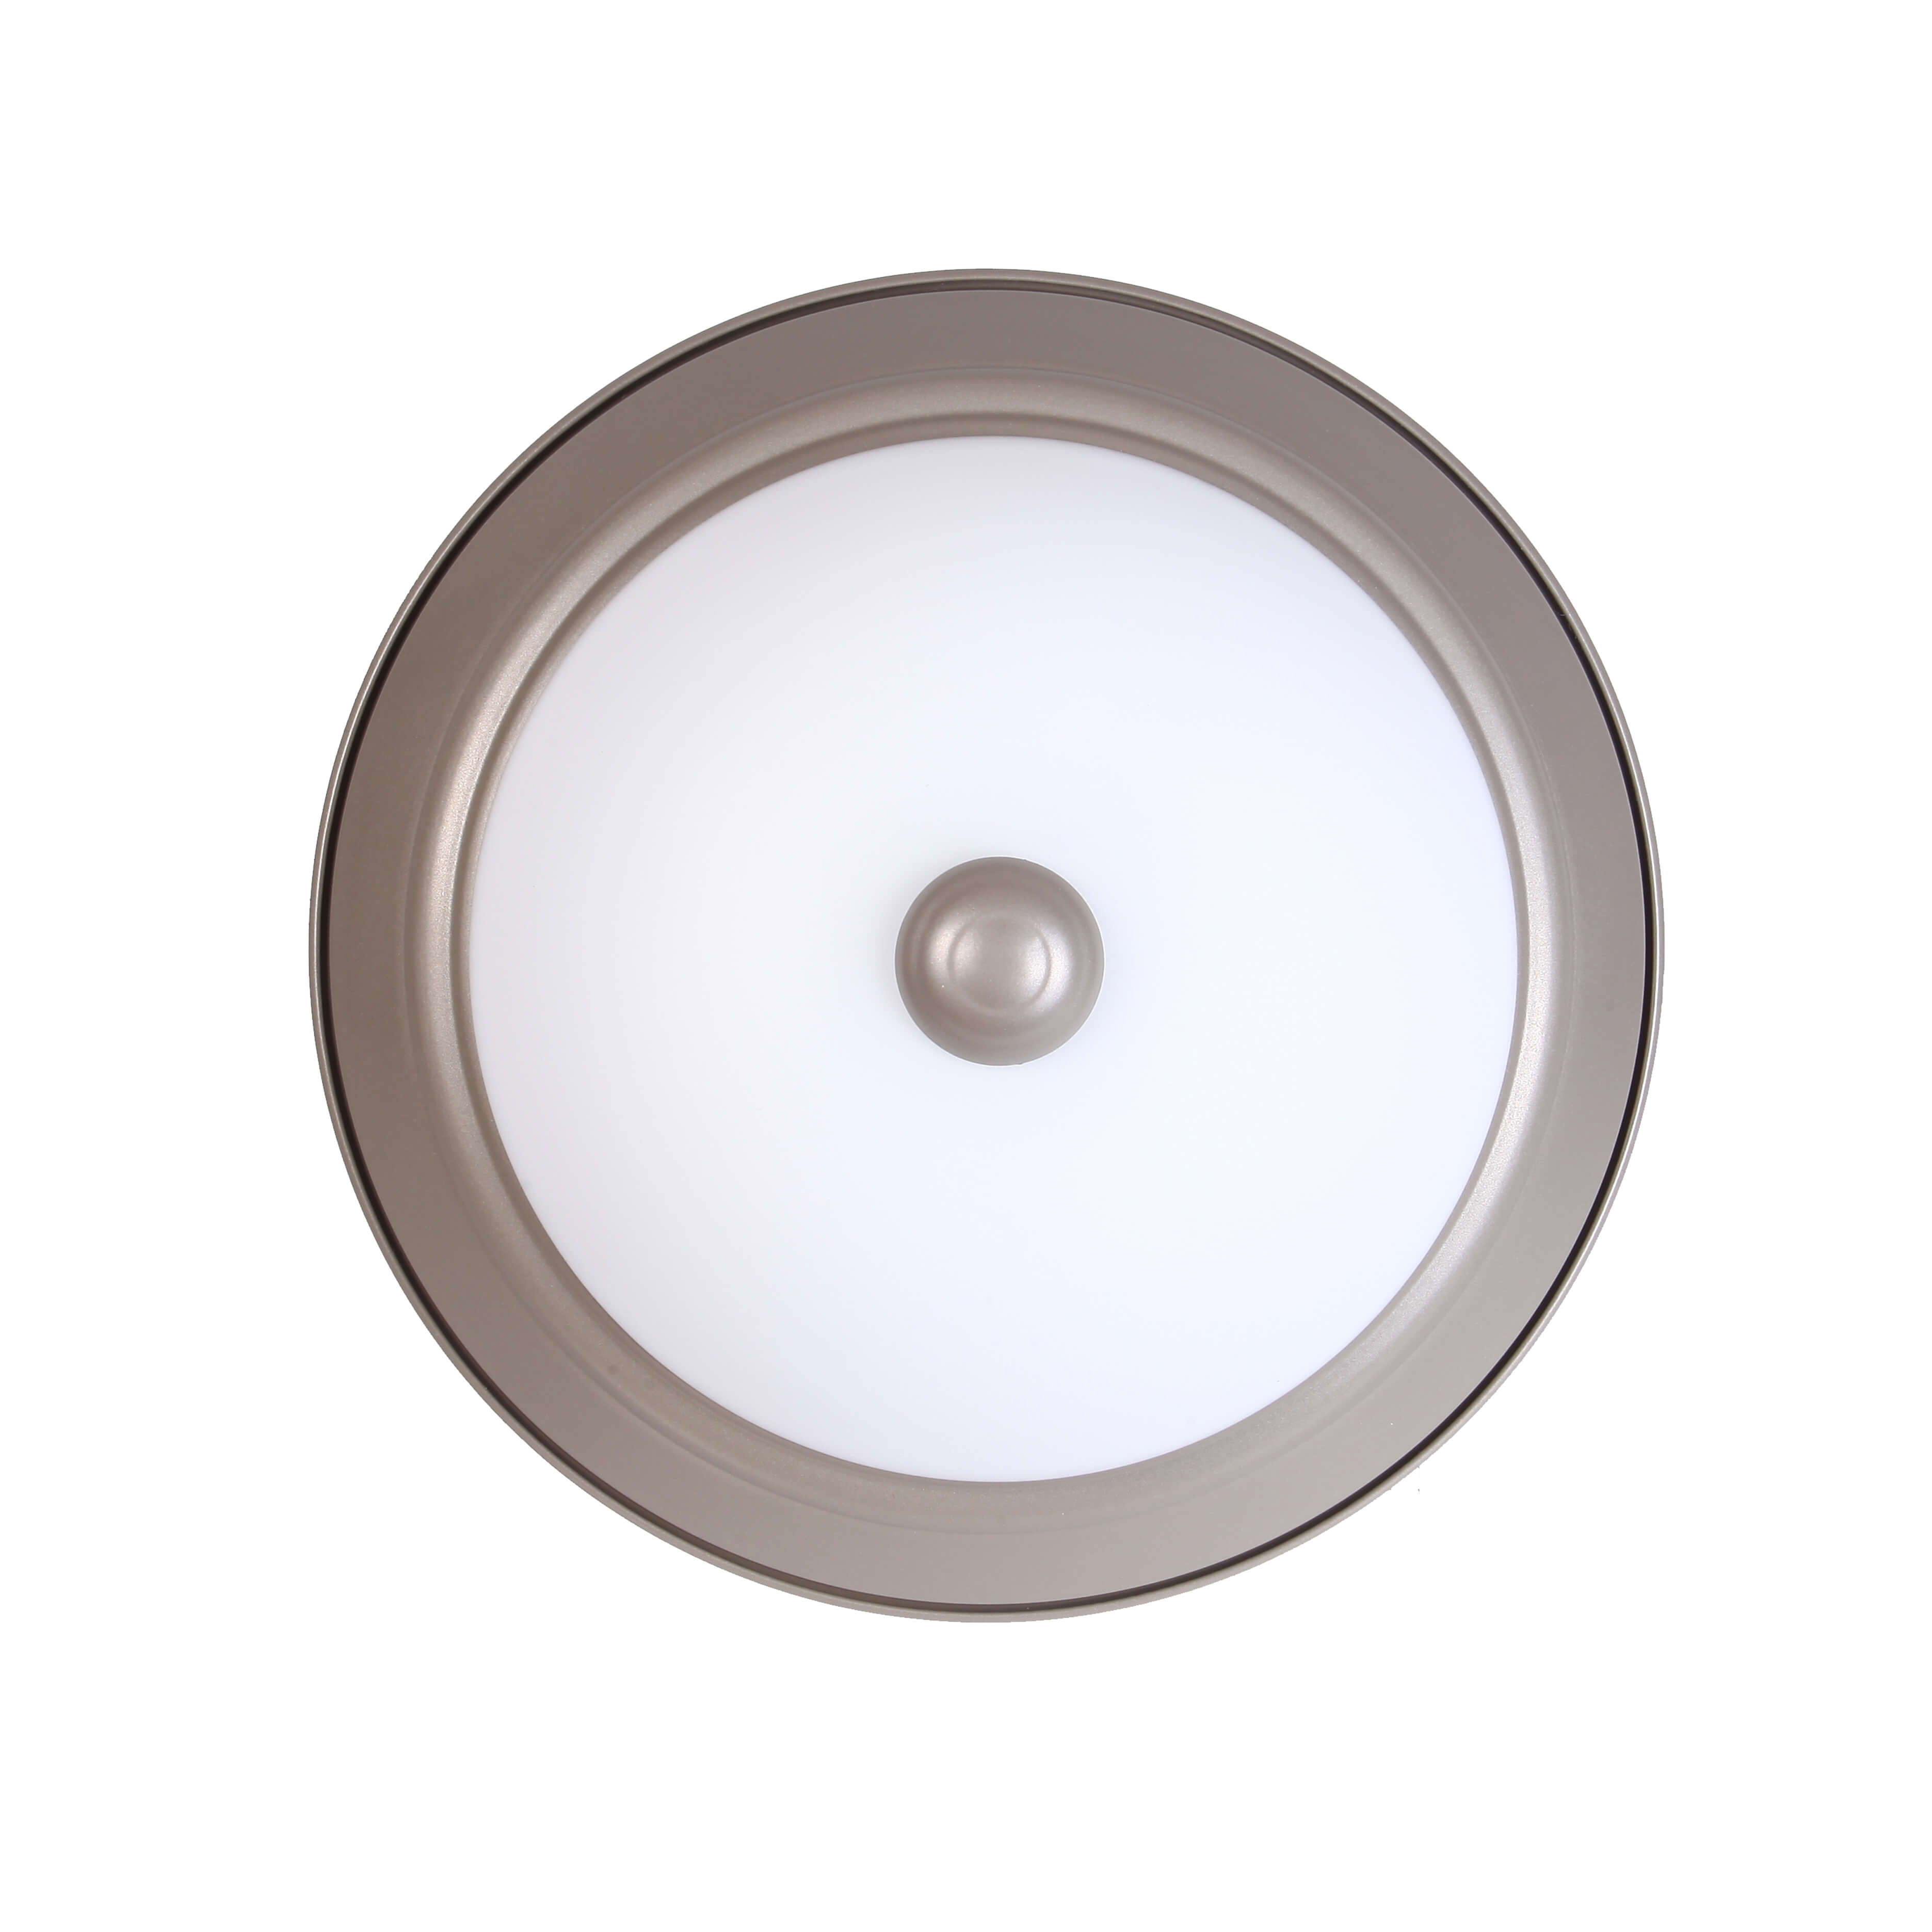 Dcf decorative ceiling fixture with finial globalux